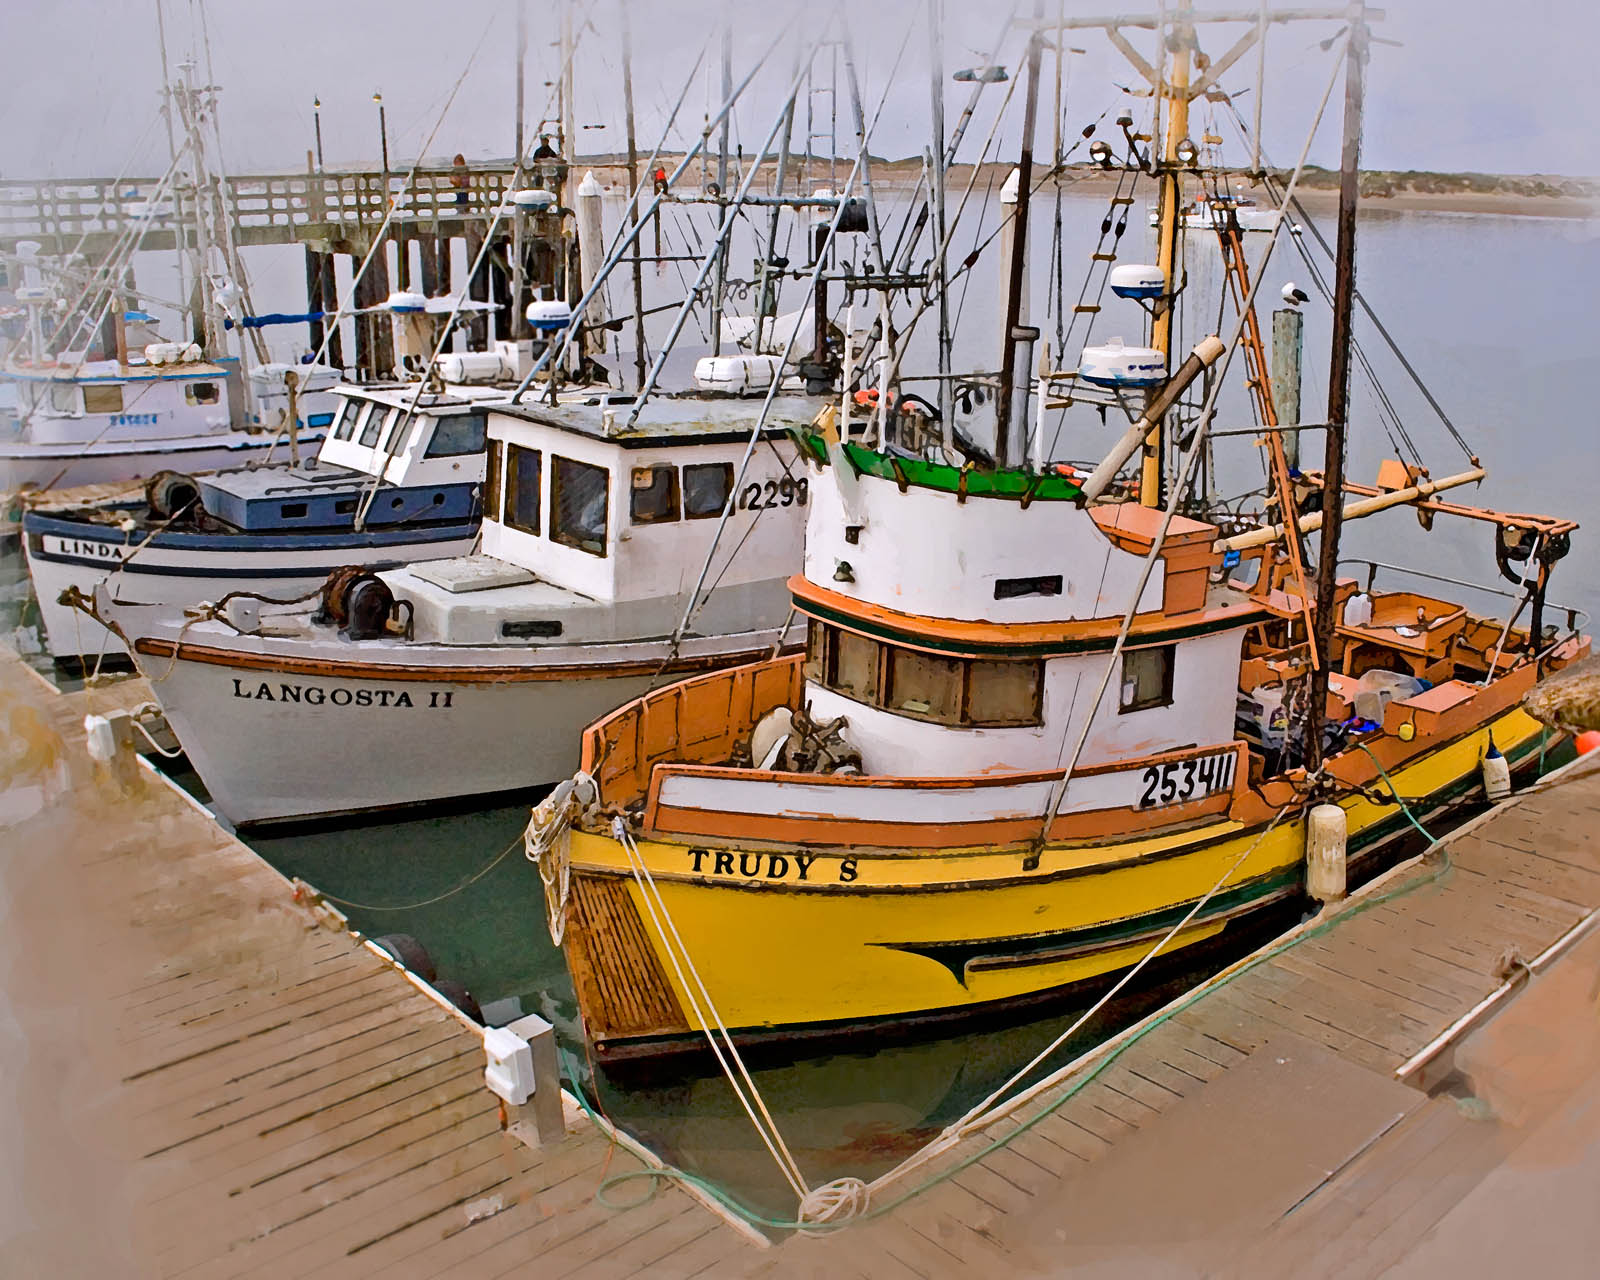 My photos c 402 fishing boats at morro bay ca for Morro bay fishing